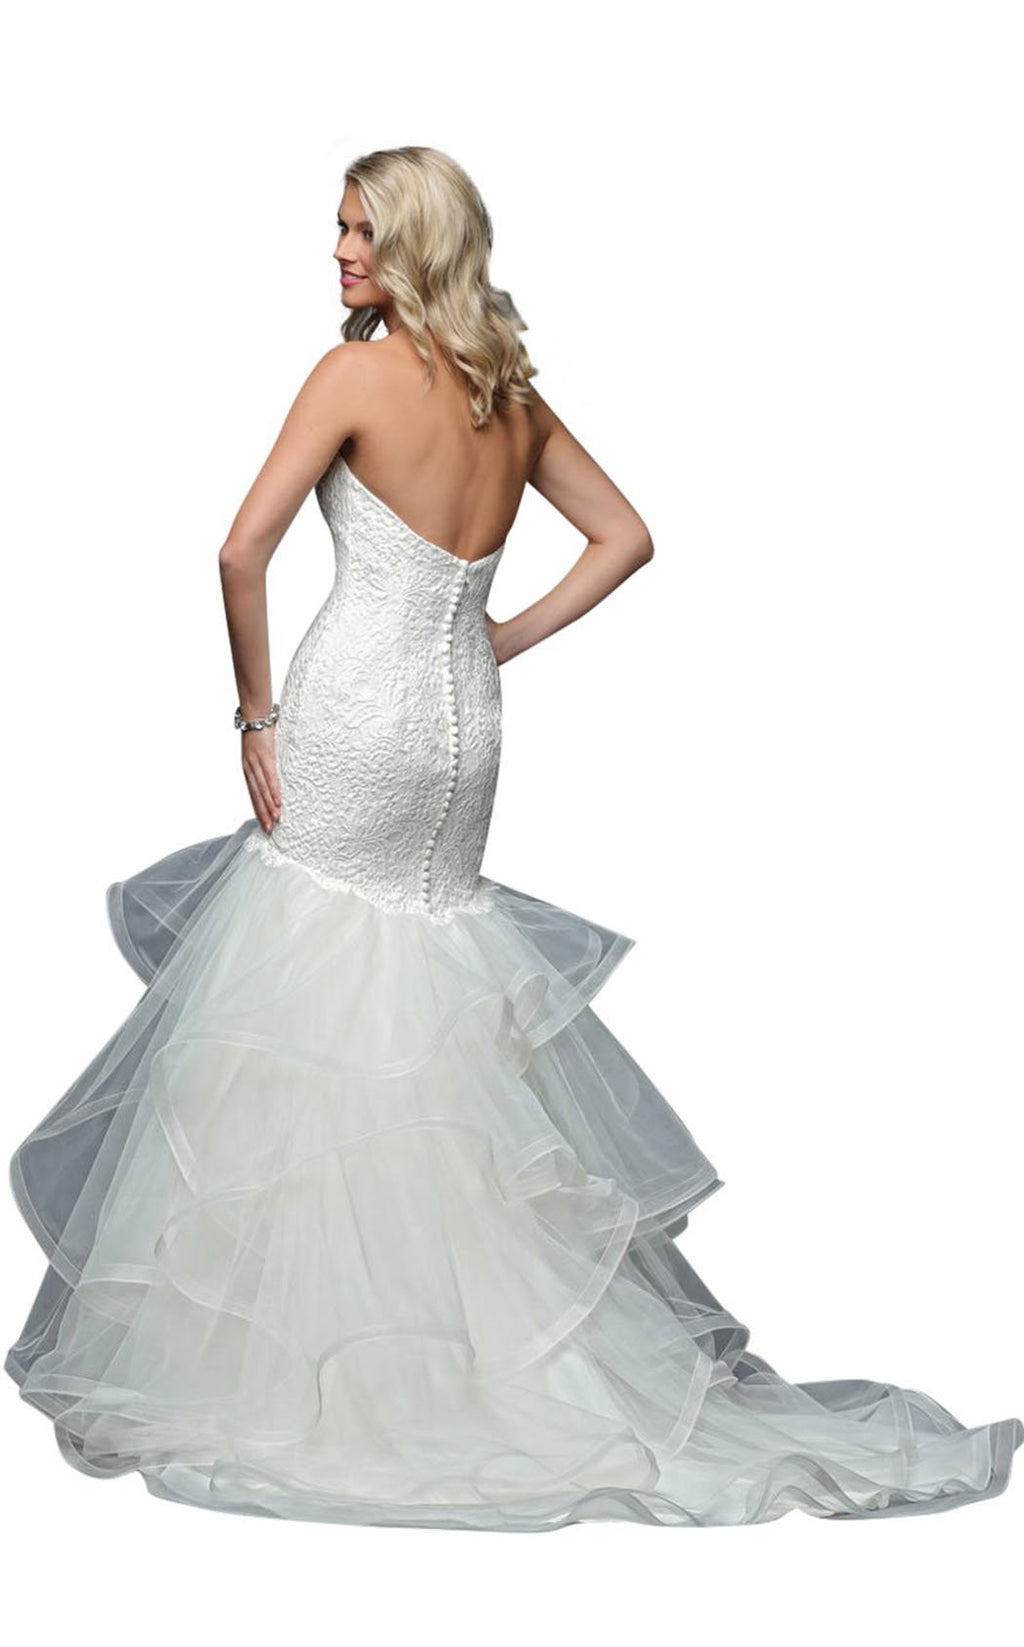 Jadore Bridal 77014 White